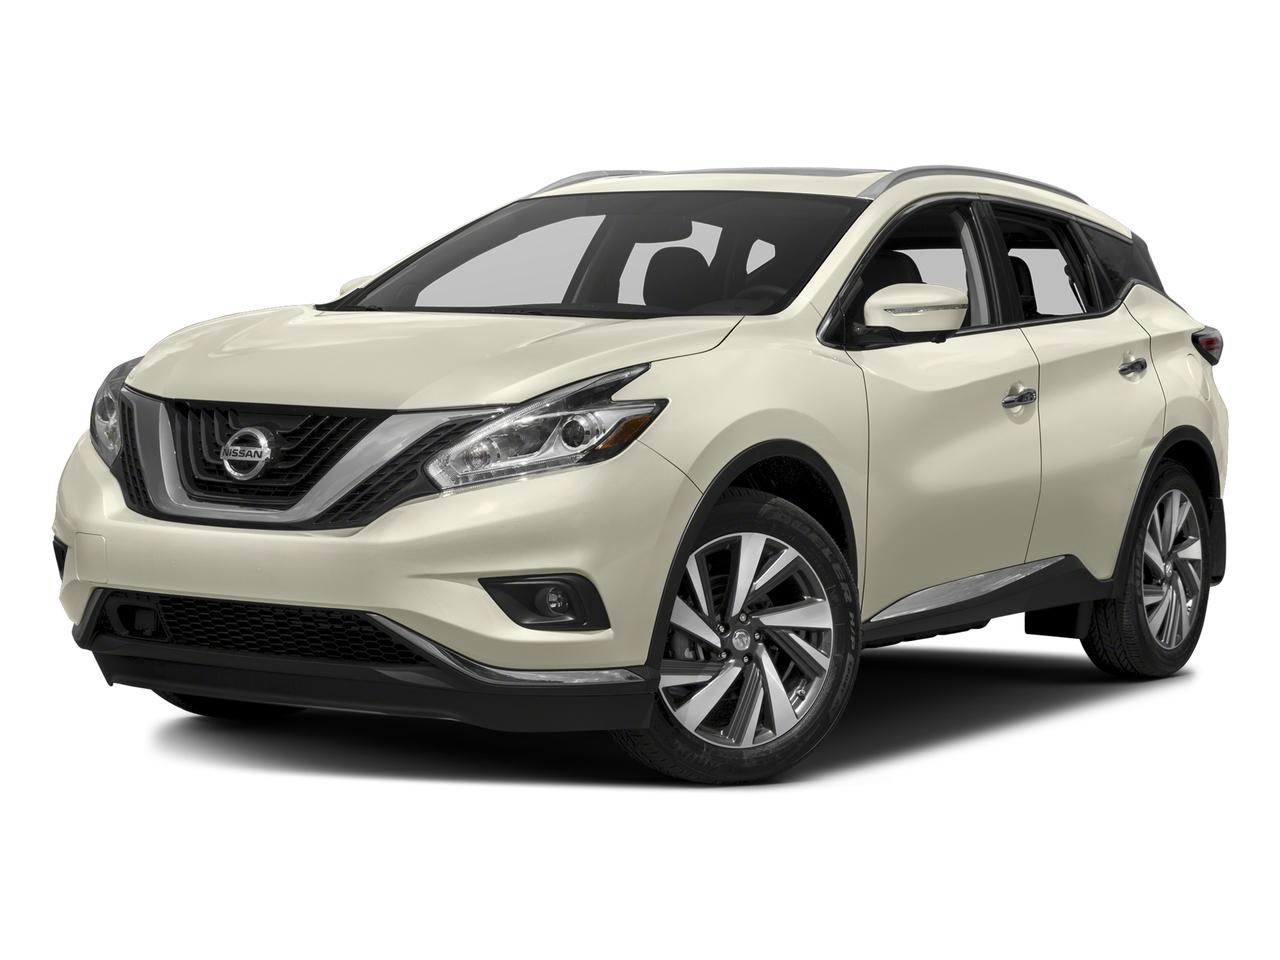 2016 Nissan Murano Vehicle Photo in VINCENNES, IN 47591-5519